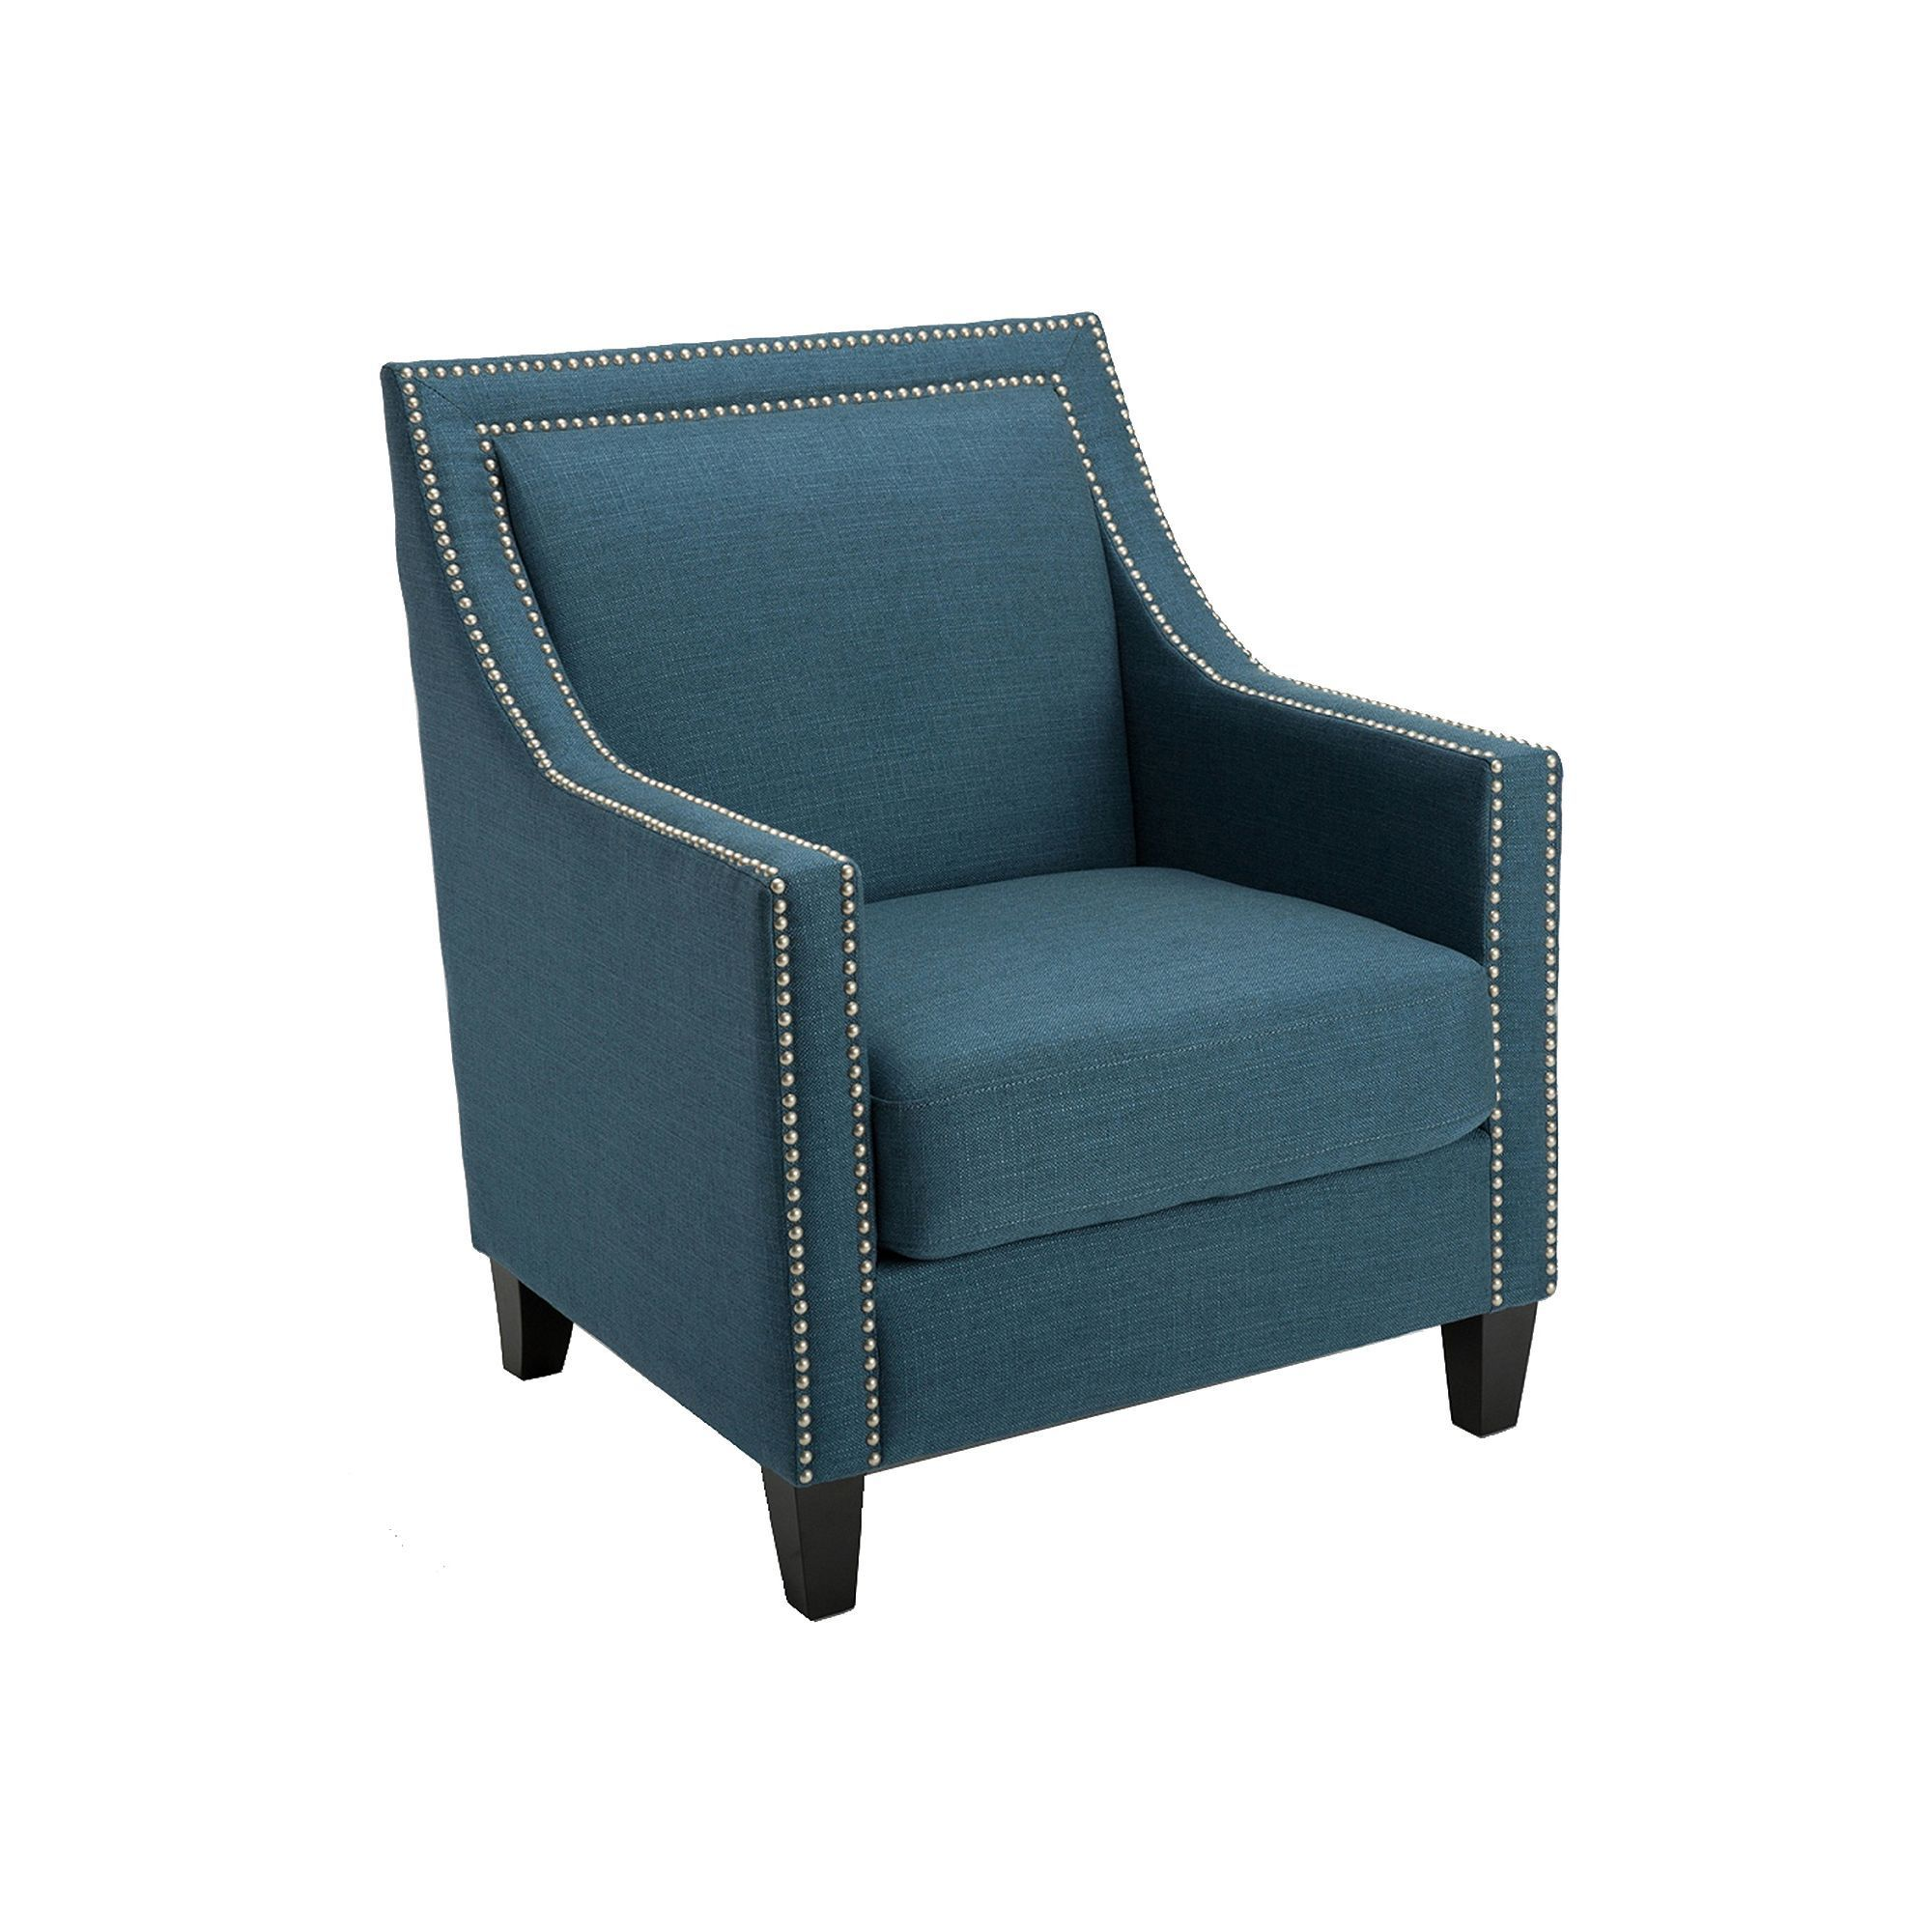 HomePop Edwin Arm Chair, Blue ArmChair (With images